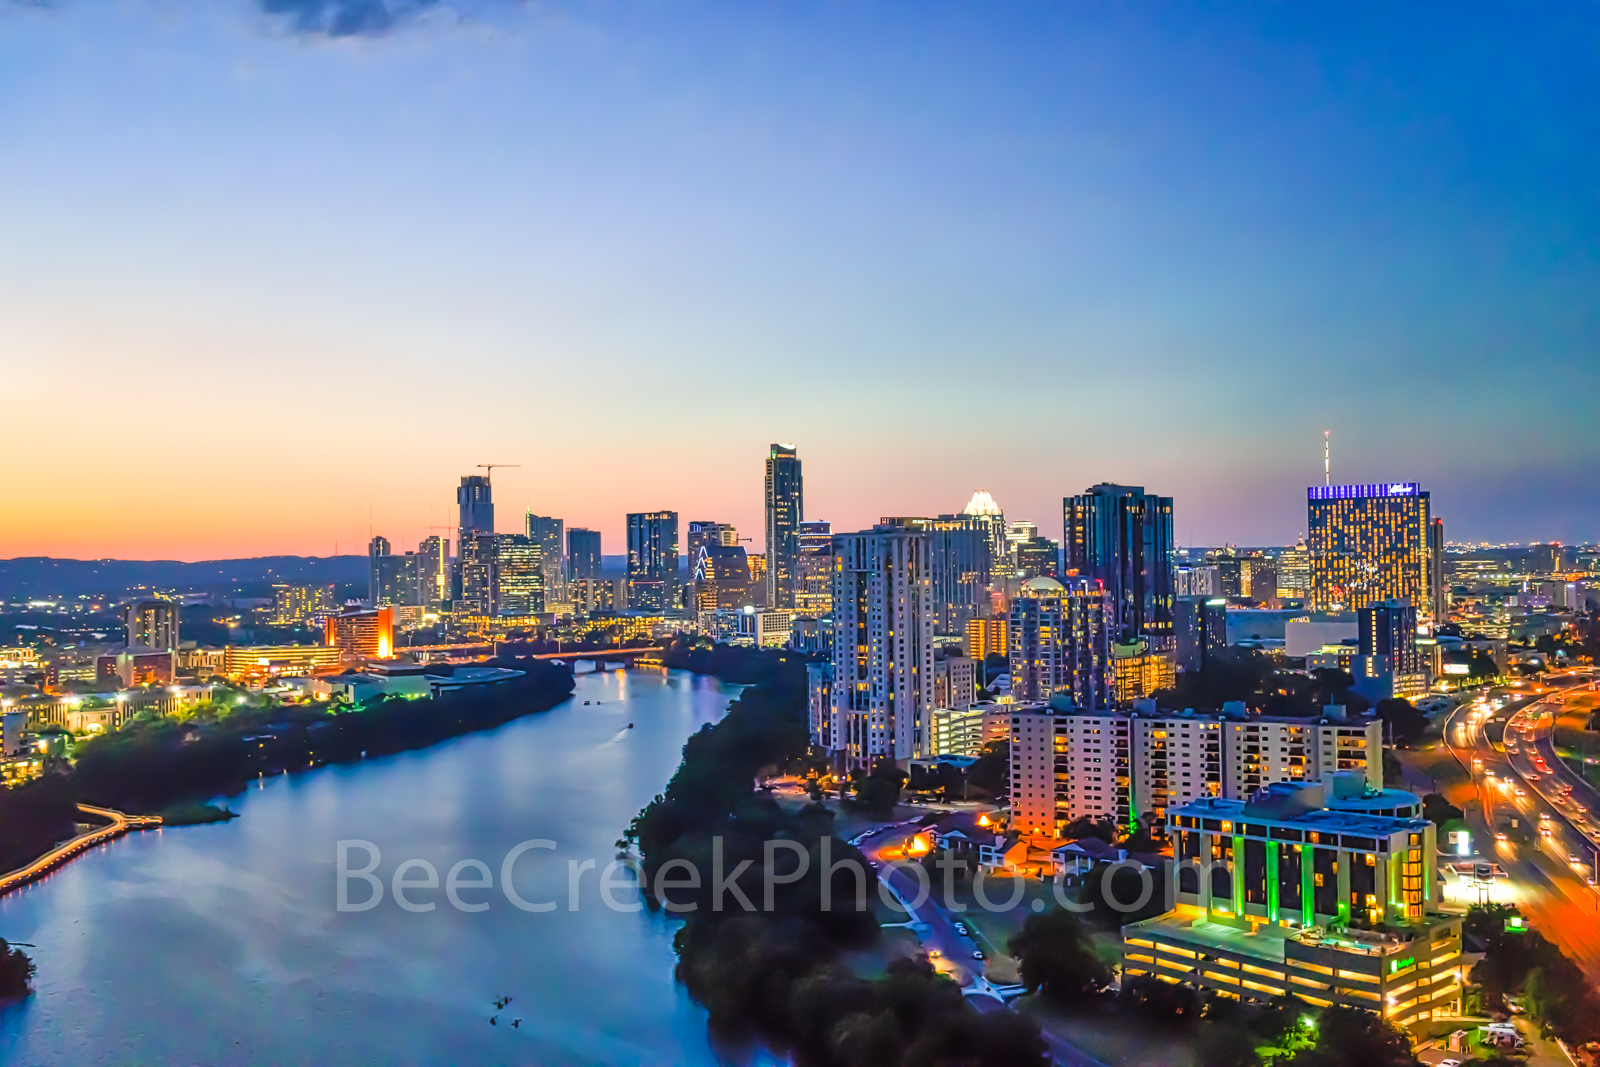 Austin Skyline at Twilight Panorama, Austin skyline, aerial, drone, Austin, night, twilight, dark, Lady Bird Lake, high rise buildings, architecture, boardwalk lights, shoreline, lake, IH35, UT, Erwin, photo